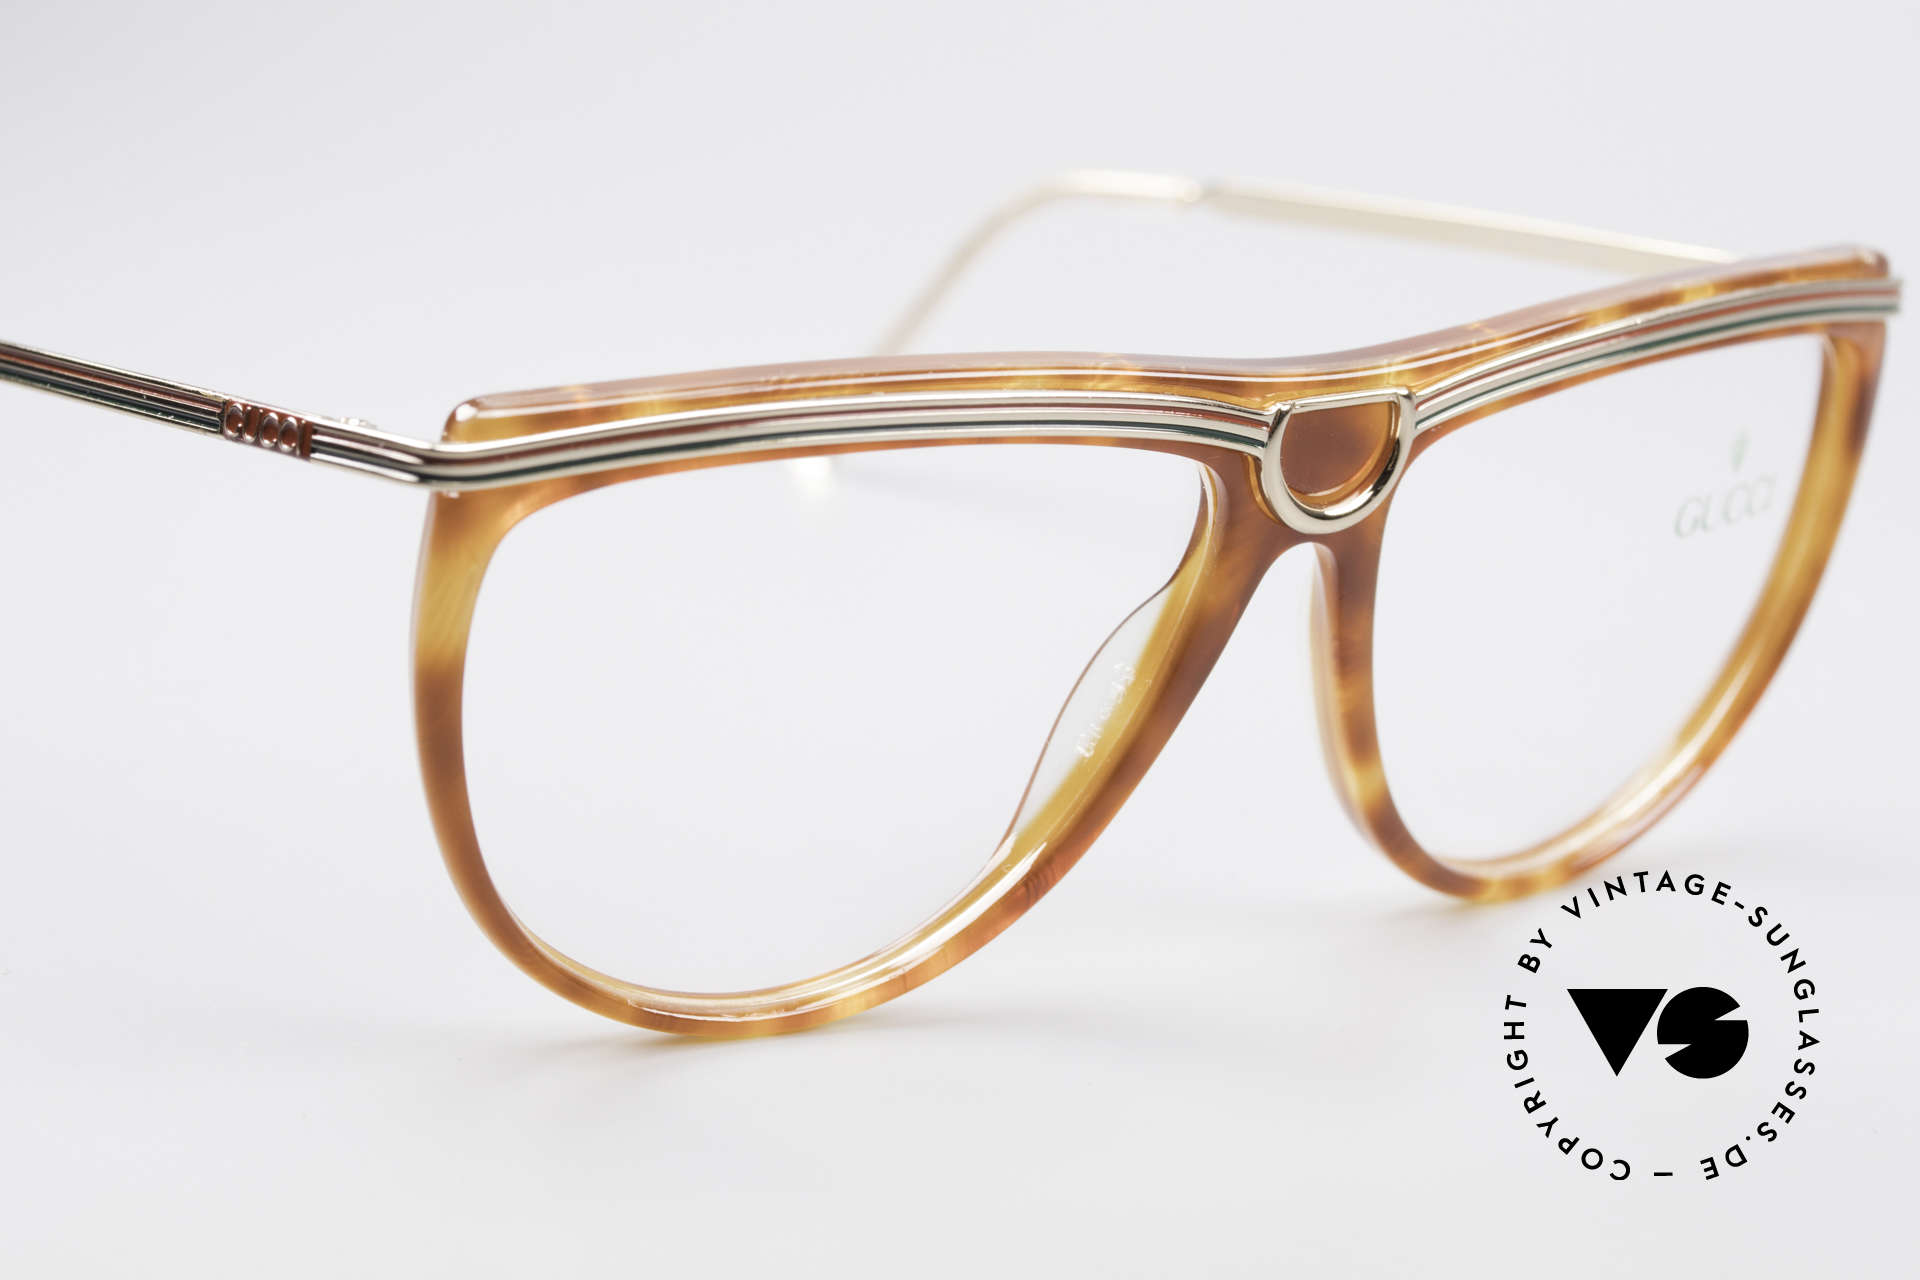 Gucci 2303 Ladies Eyeglasses 80's, NO RETRO EYEWEAR, but a unique old ORIGINAL!, Made for Women